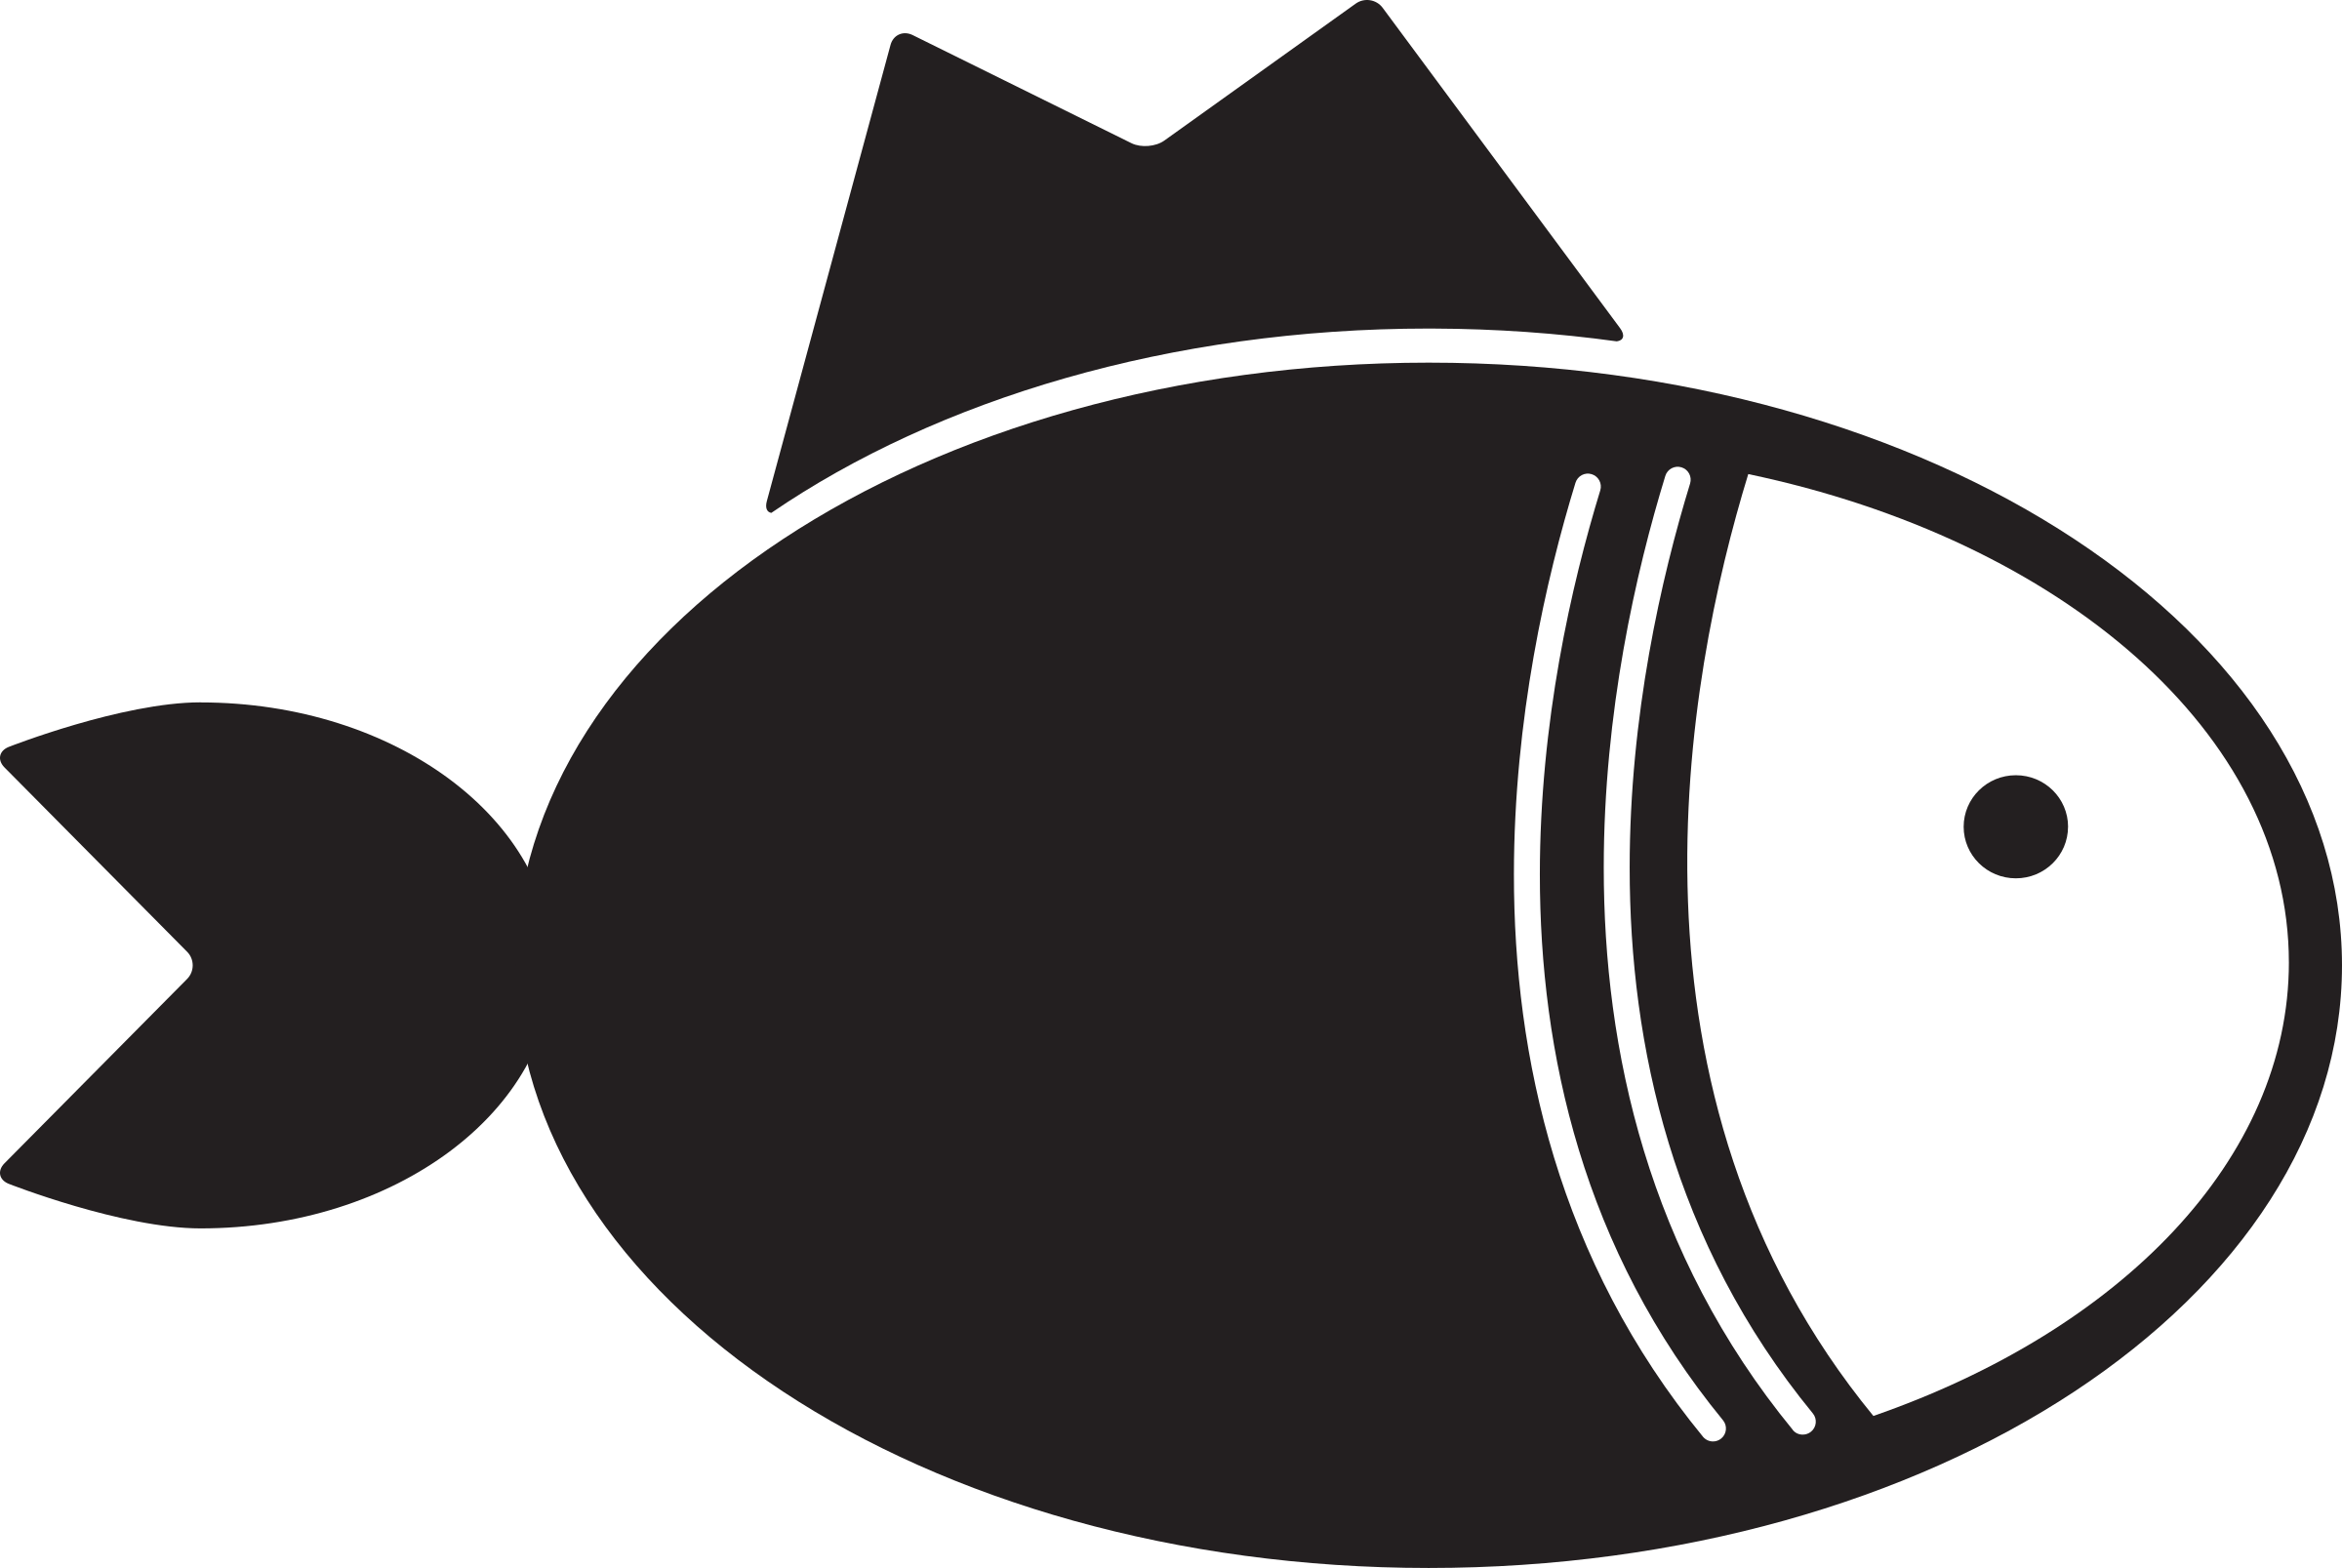 Clipart fish icon. Kitchen big image png